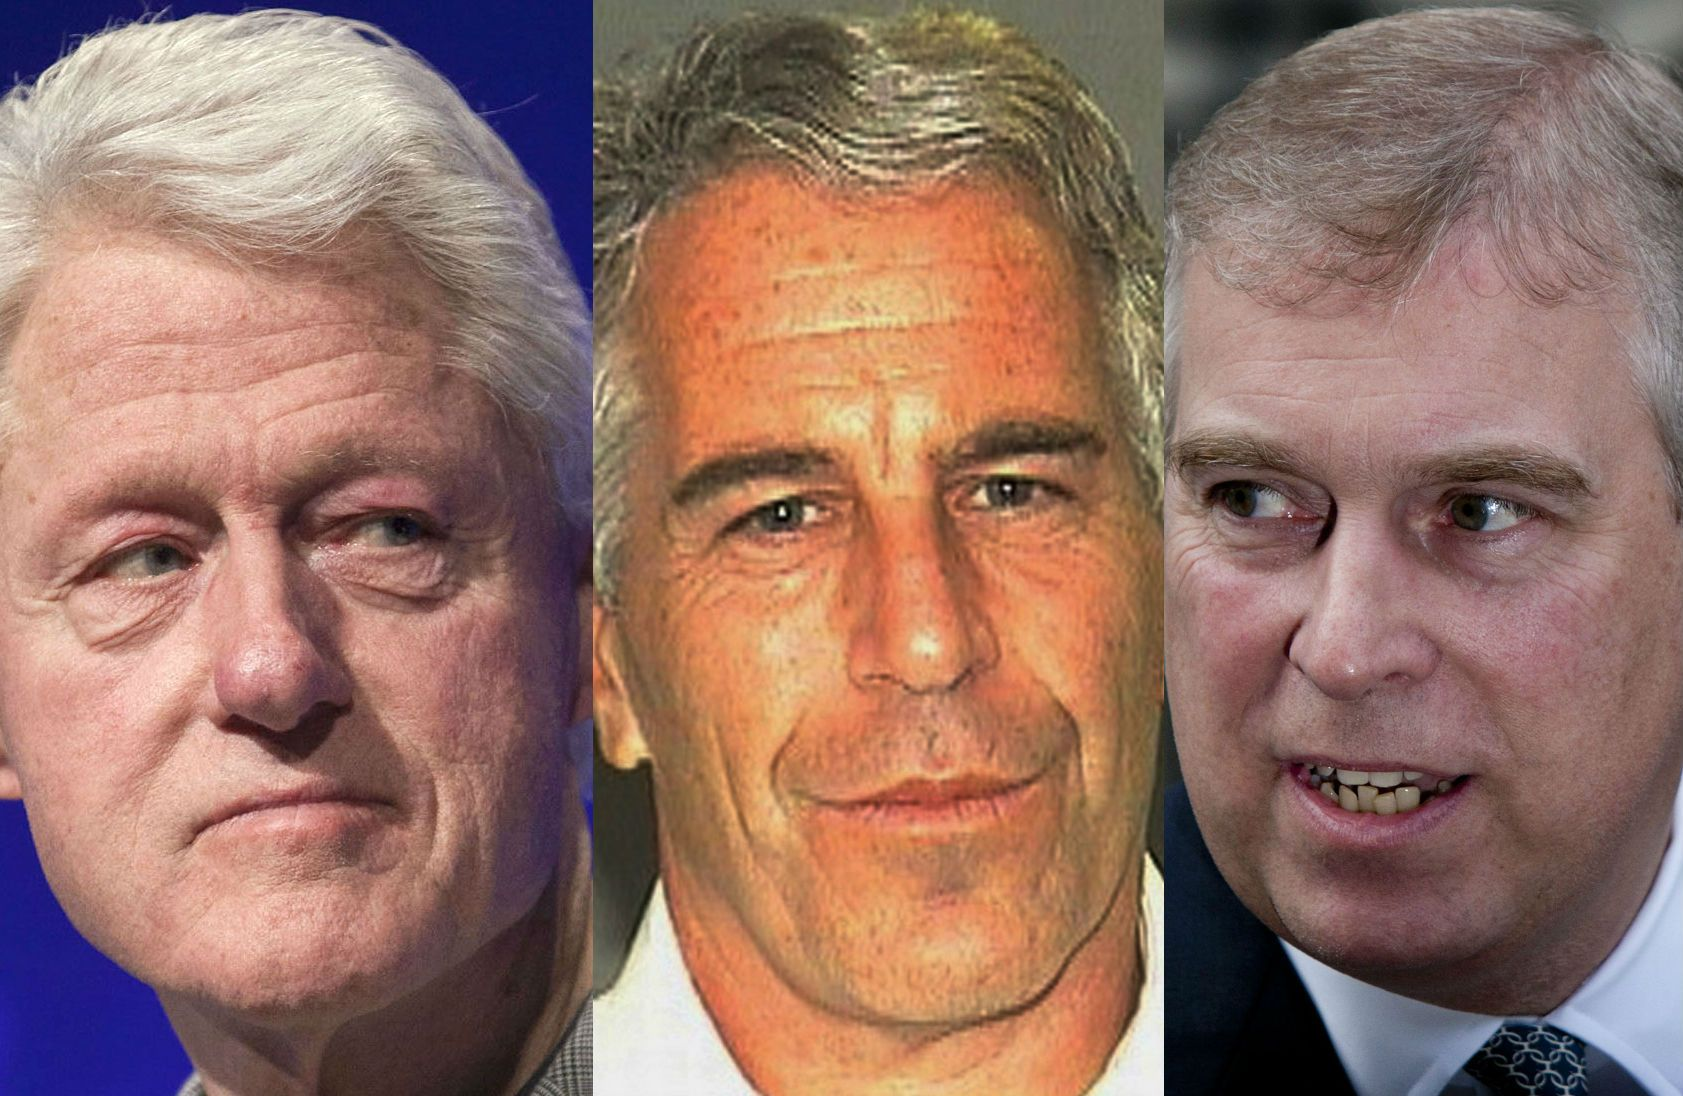 Clinton and Epstein